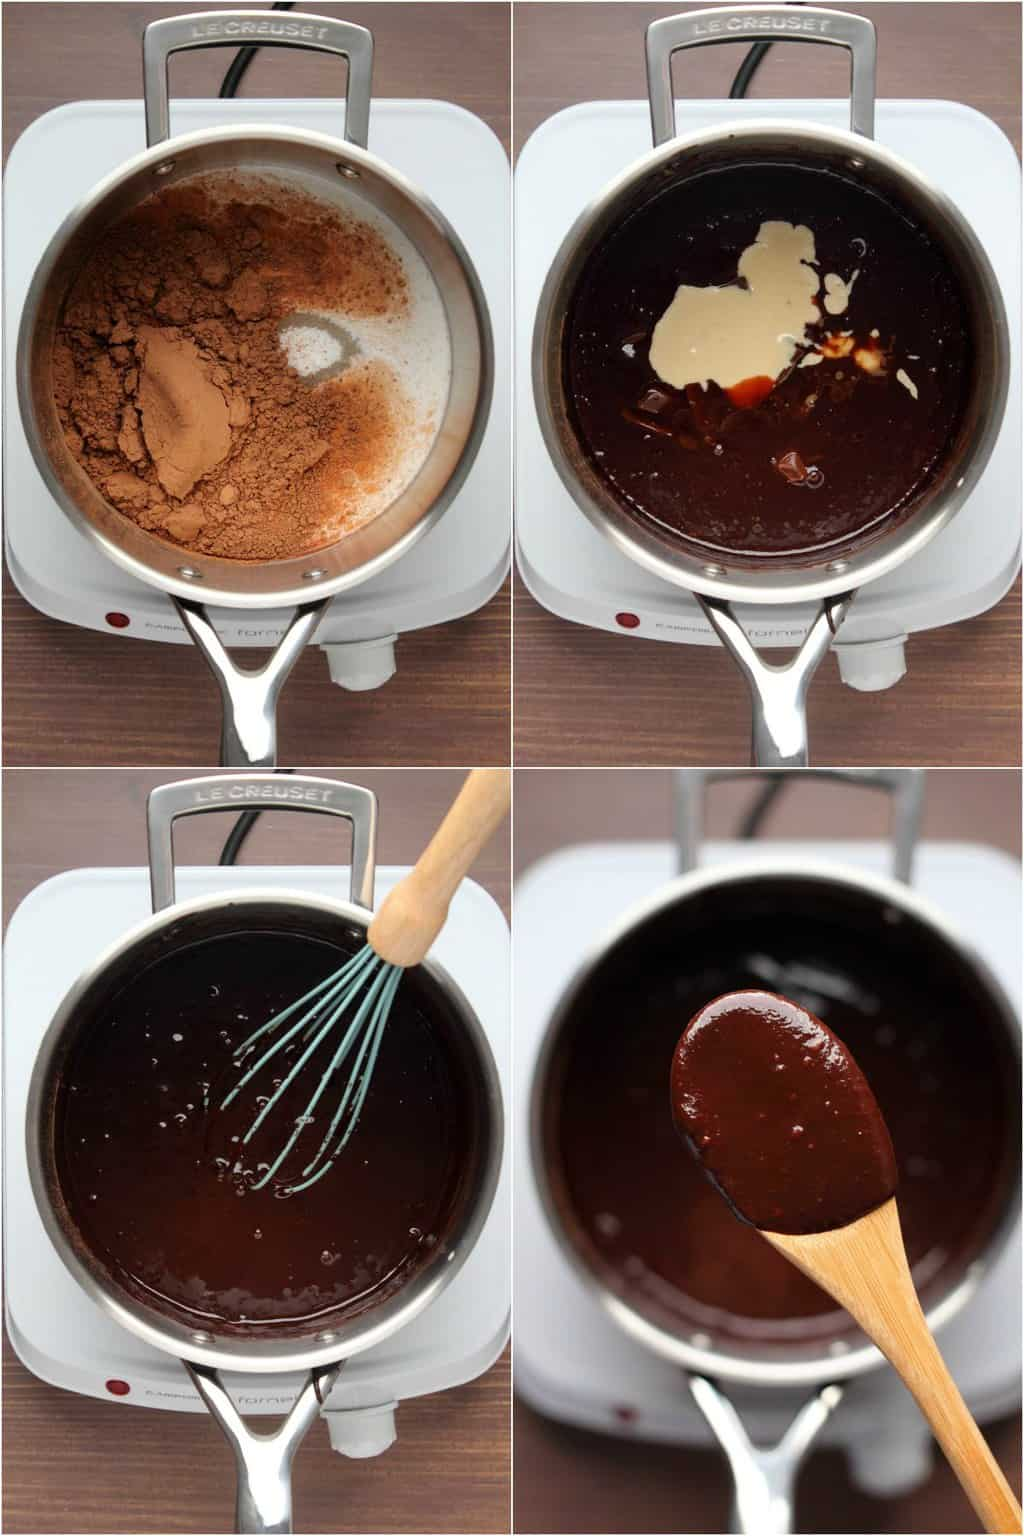 Step by step process photo collage of making vegan chocolate sauce.